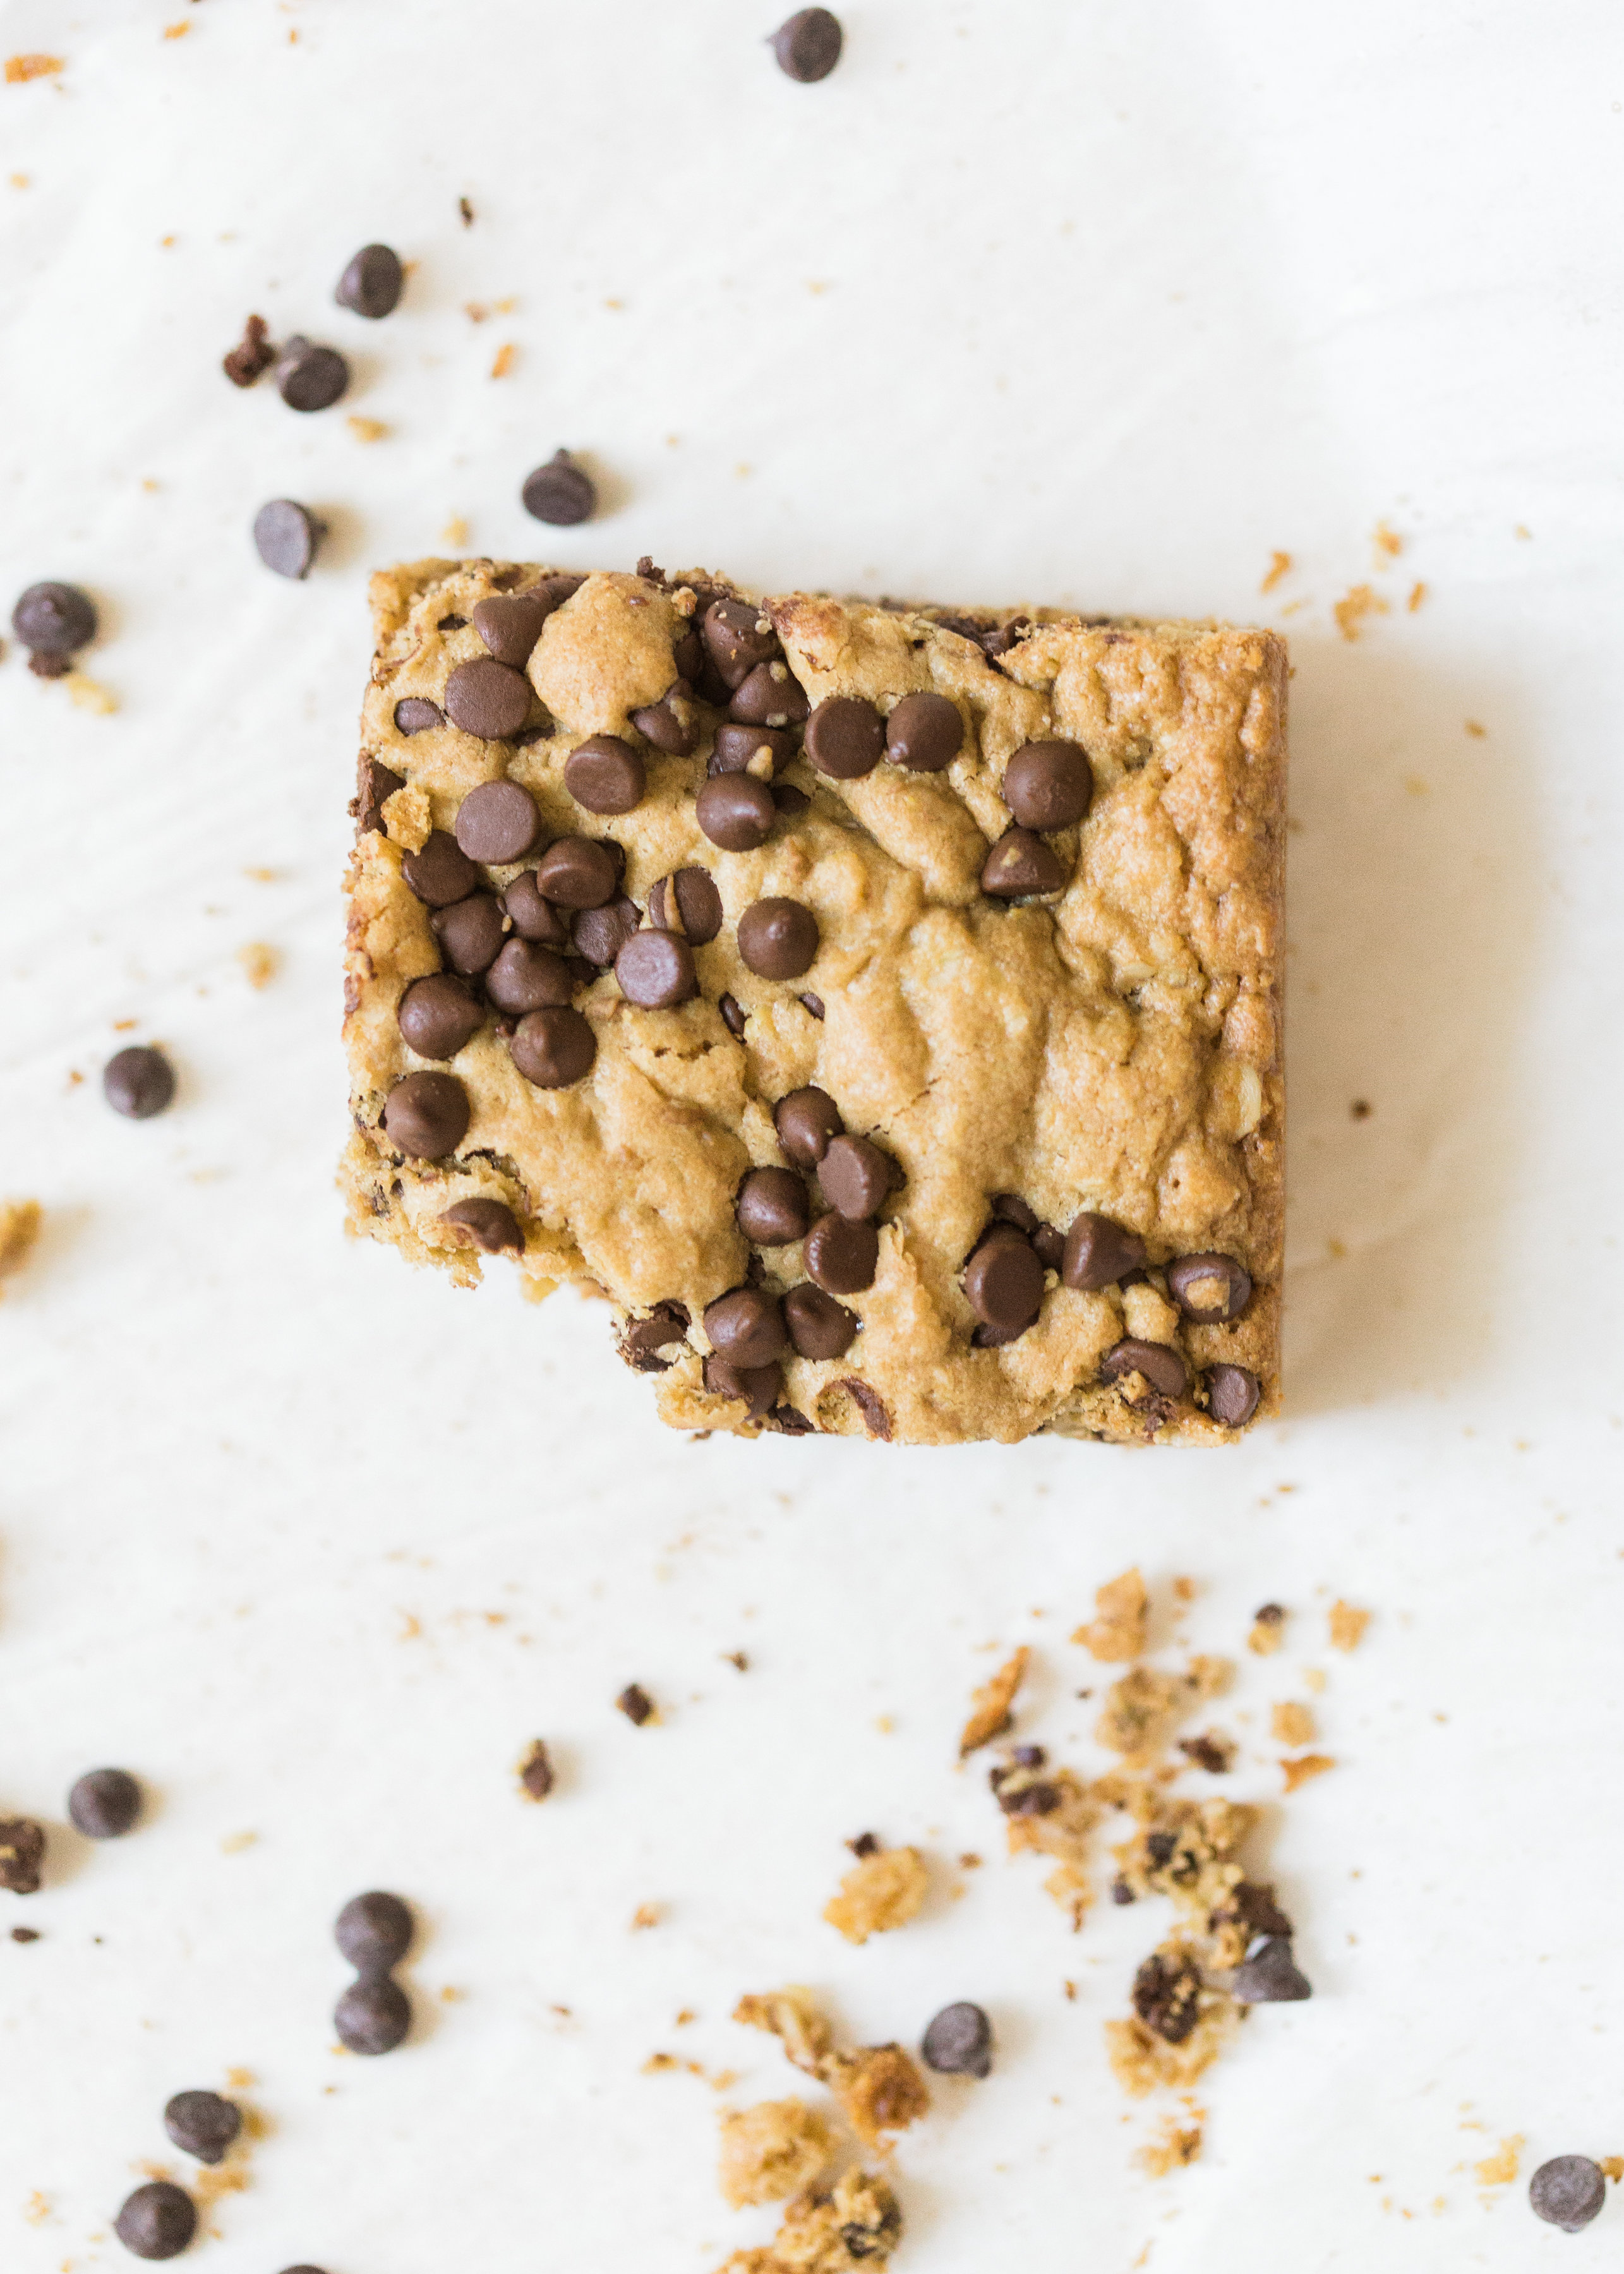 Delicious chocolate chip oatmeal cookies made extra simple by baking them up in a big batch of bars, these super moistchocolate chip oatmeal cookie bars are a favorite of our whole family, and for good reason! Click through for the #recipe. #oatmealcookies #oatmealcookiebars #cookiebars  #oatmealcookierecipe #dairyfree | glitterinc.com | @glitterinc